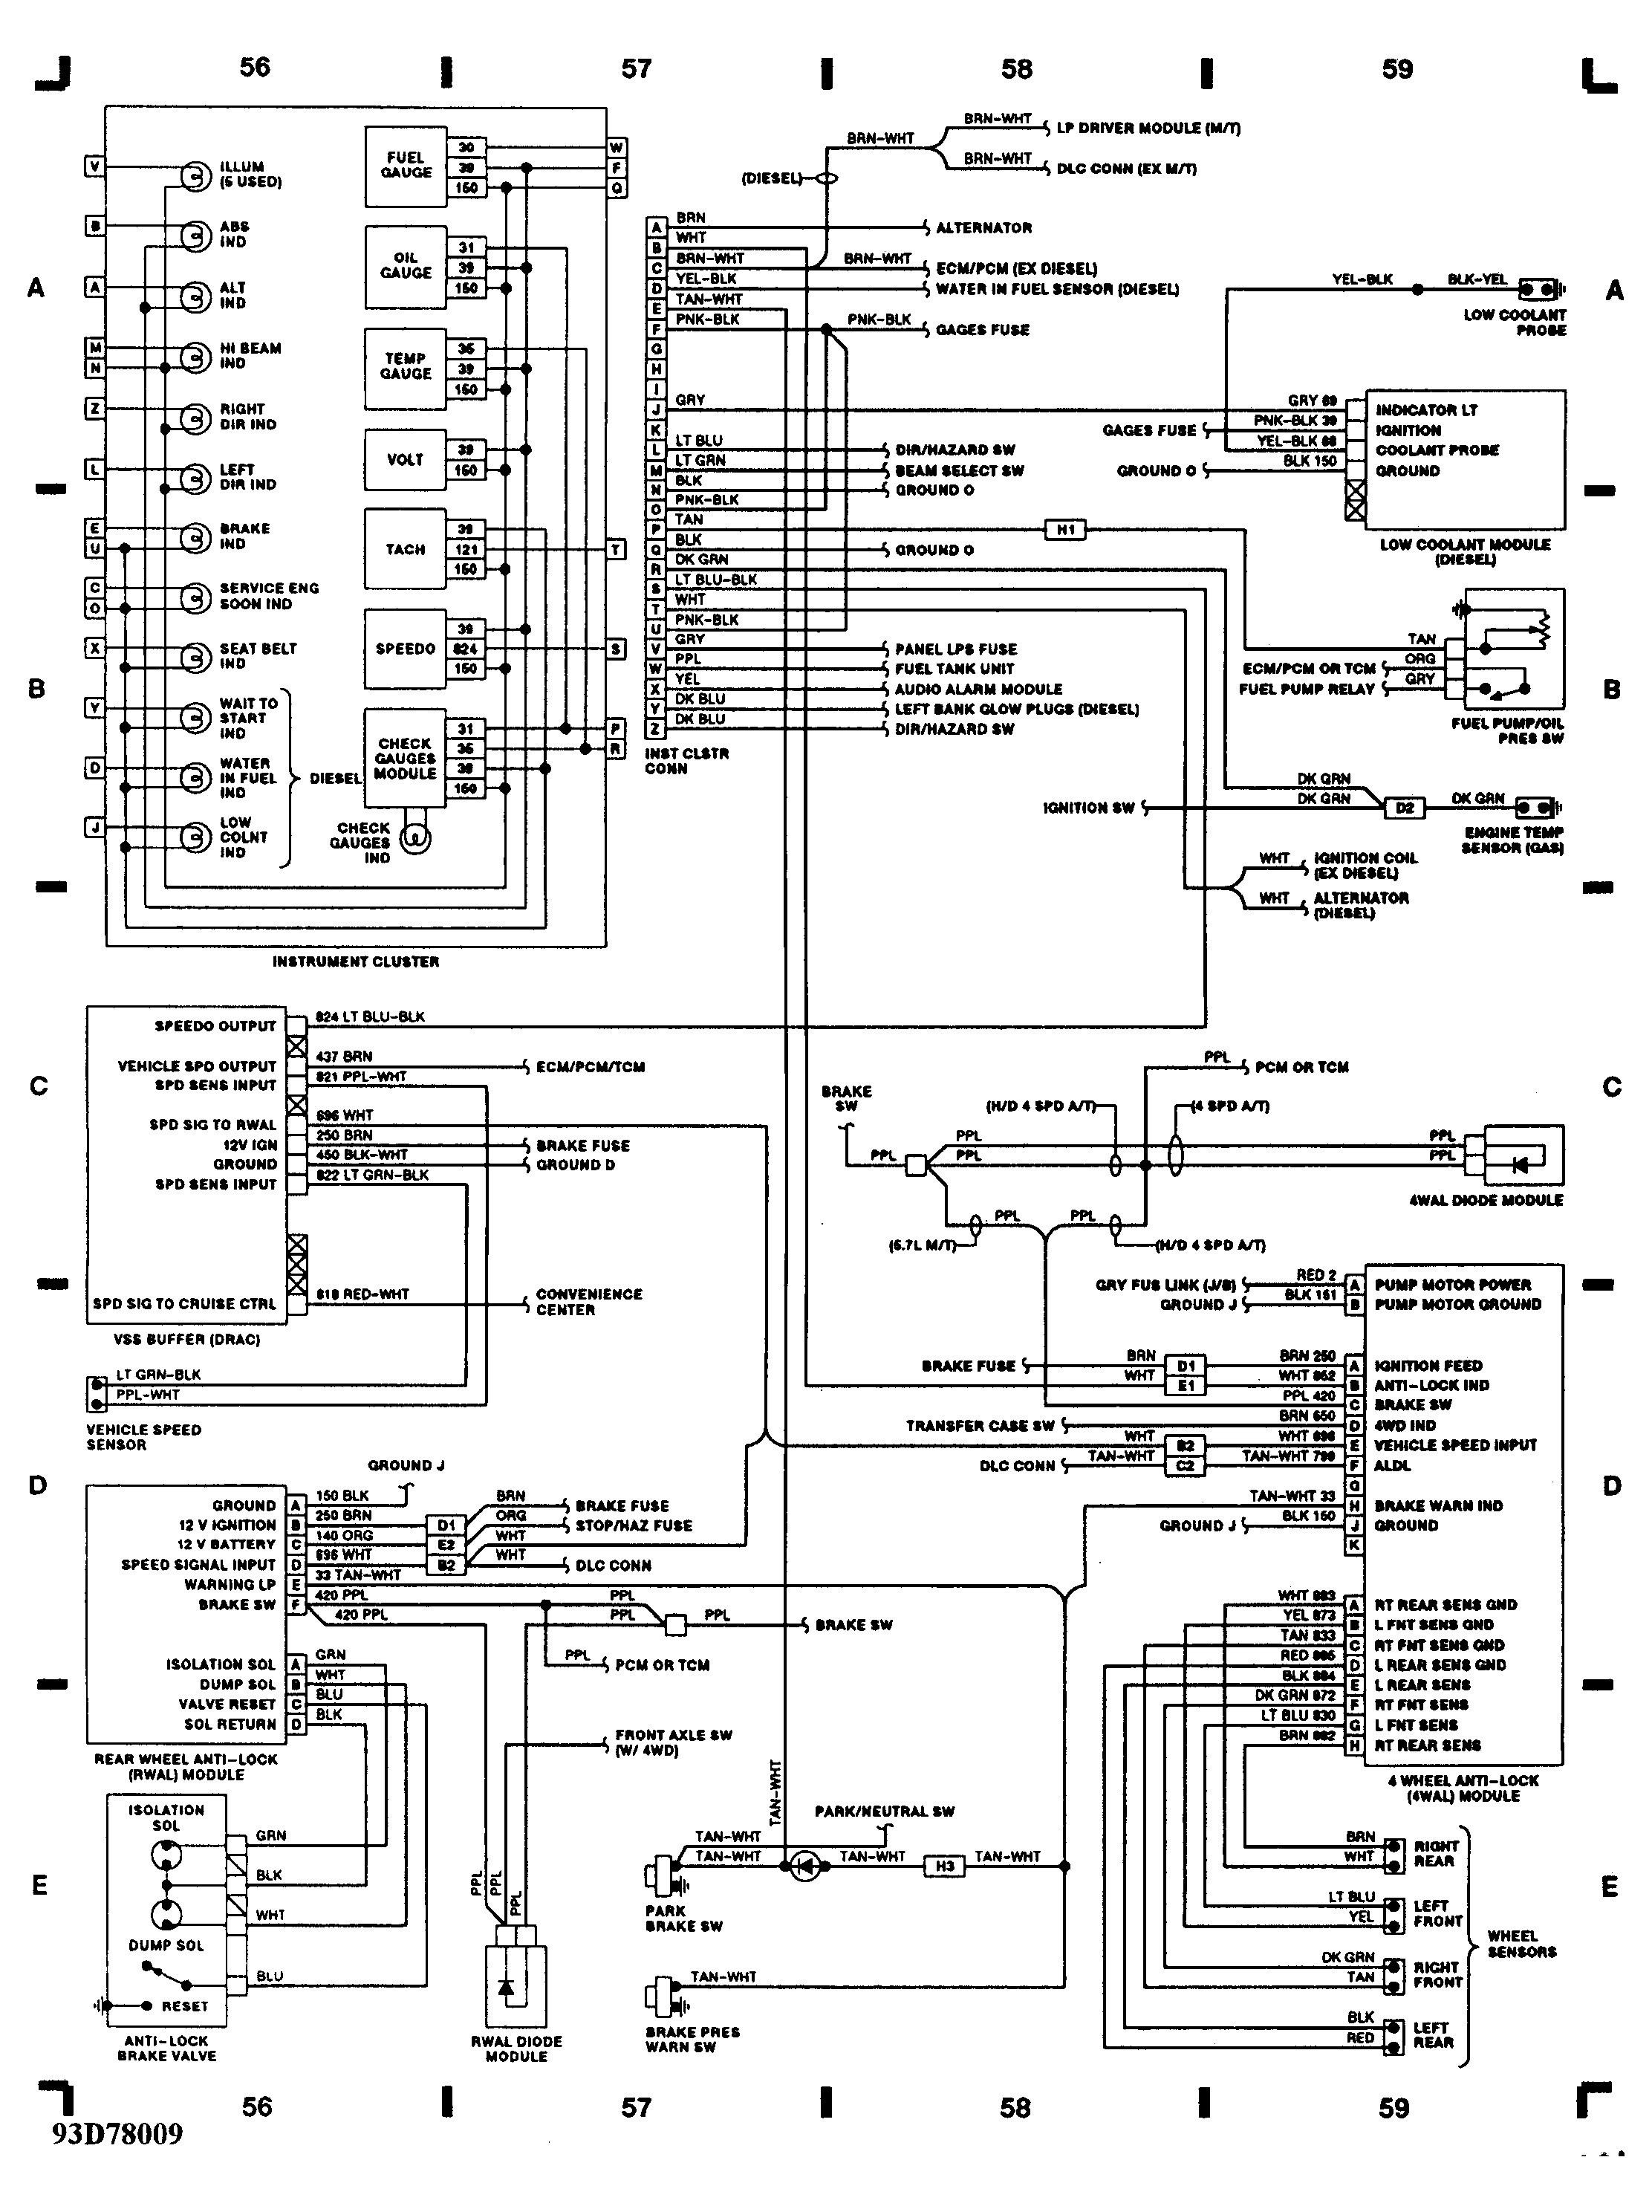 4 3 Liter V6 Vortec Engine Diagram 4 3 Vortec Wiring Harness Just Wiring Diagram Of 4 3 Liter V6 Vortec Engine Diagram